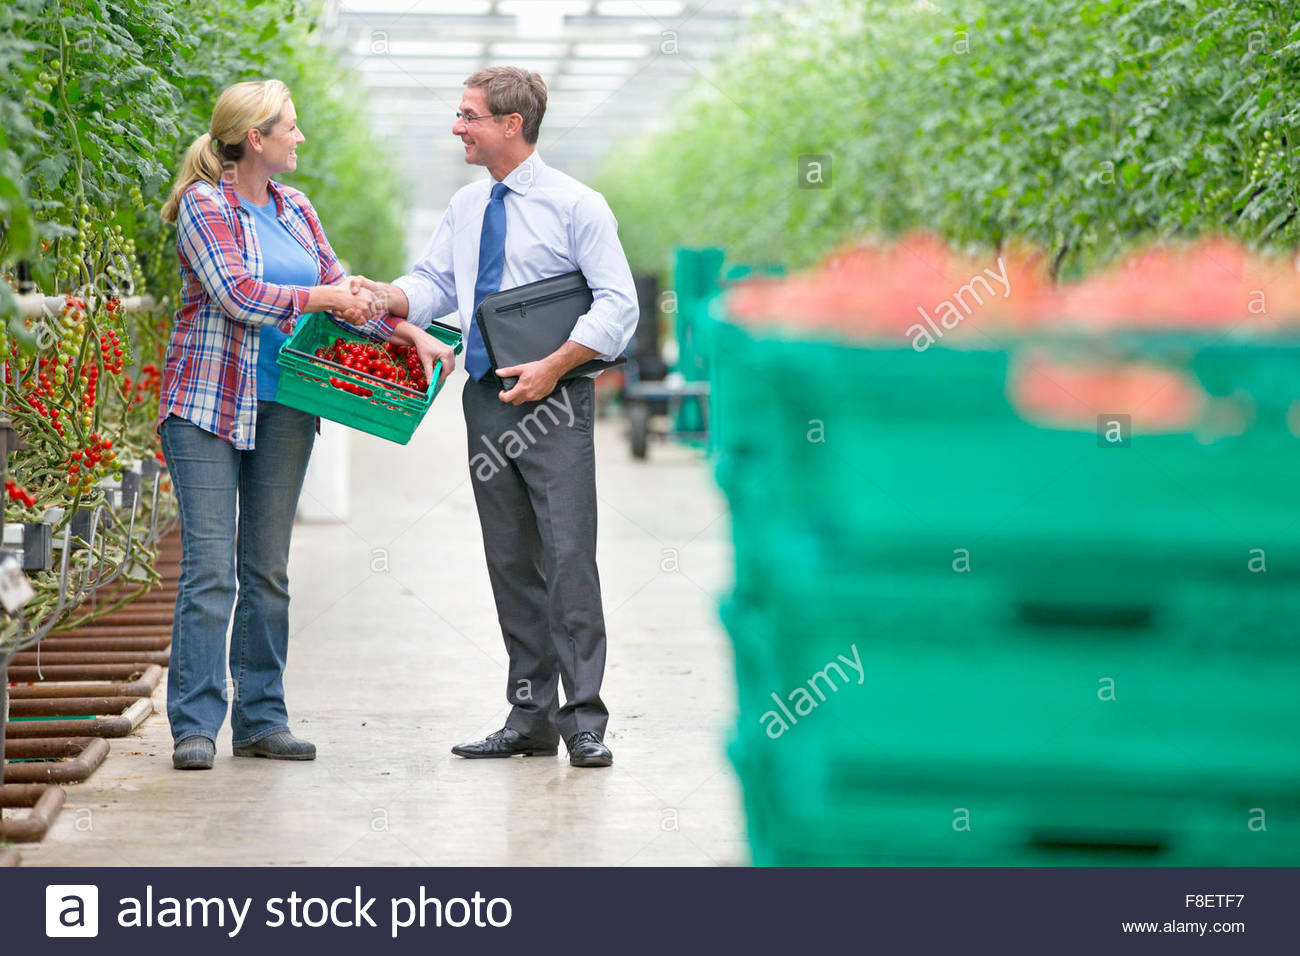 Businessman and grower with crate of ripe tomatoes handshaking in greenhouse - Stock Image